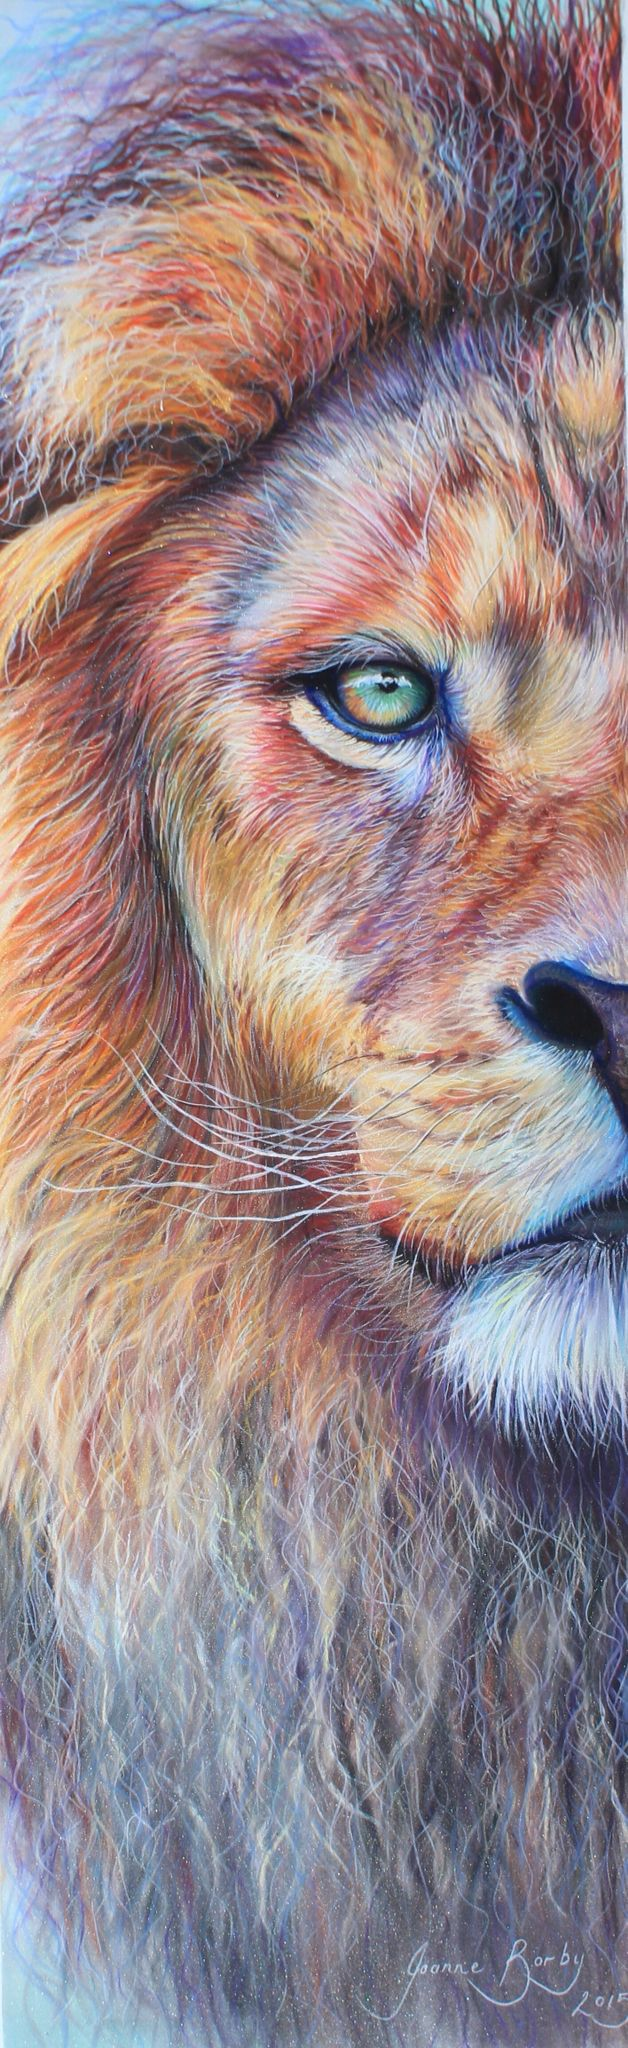 """Some days I have half the courage of a lion"" by Joanne Barby Instagram @joannebarby #lion #liondrawing #pastel #joannebarby #drawing"